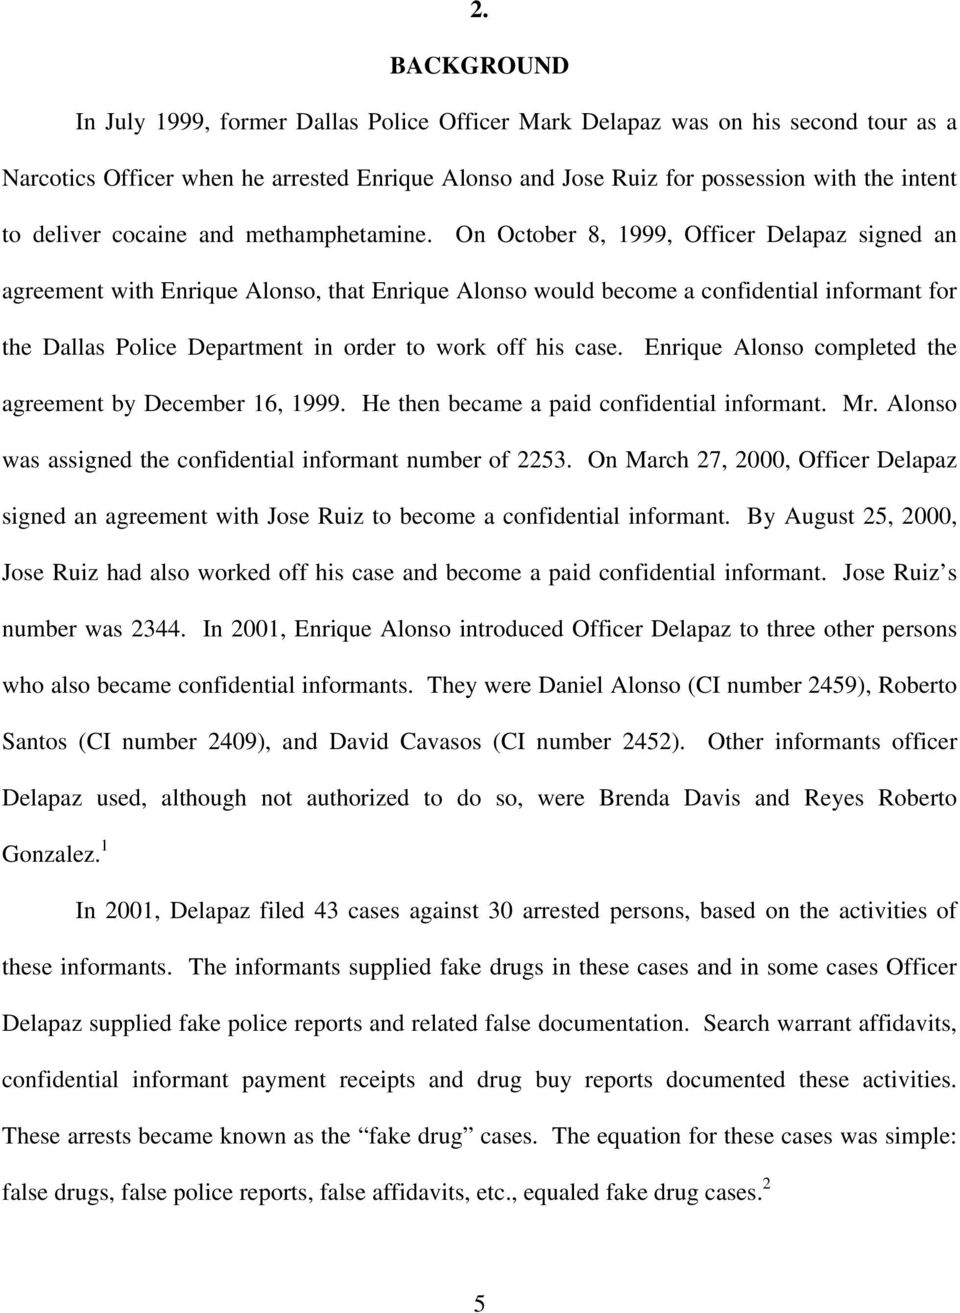 On October 8, 1999, Officer Delapaz signed an agreement with Enrique Alonso, that Enrique Alonso would become a confidential informant for the Dallas Police Department in order to work off his case.